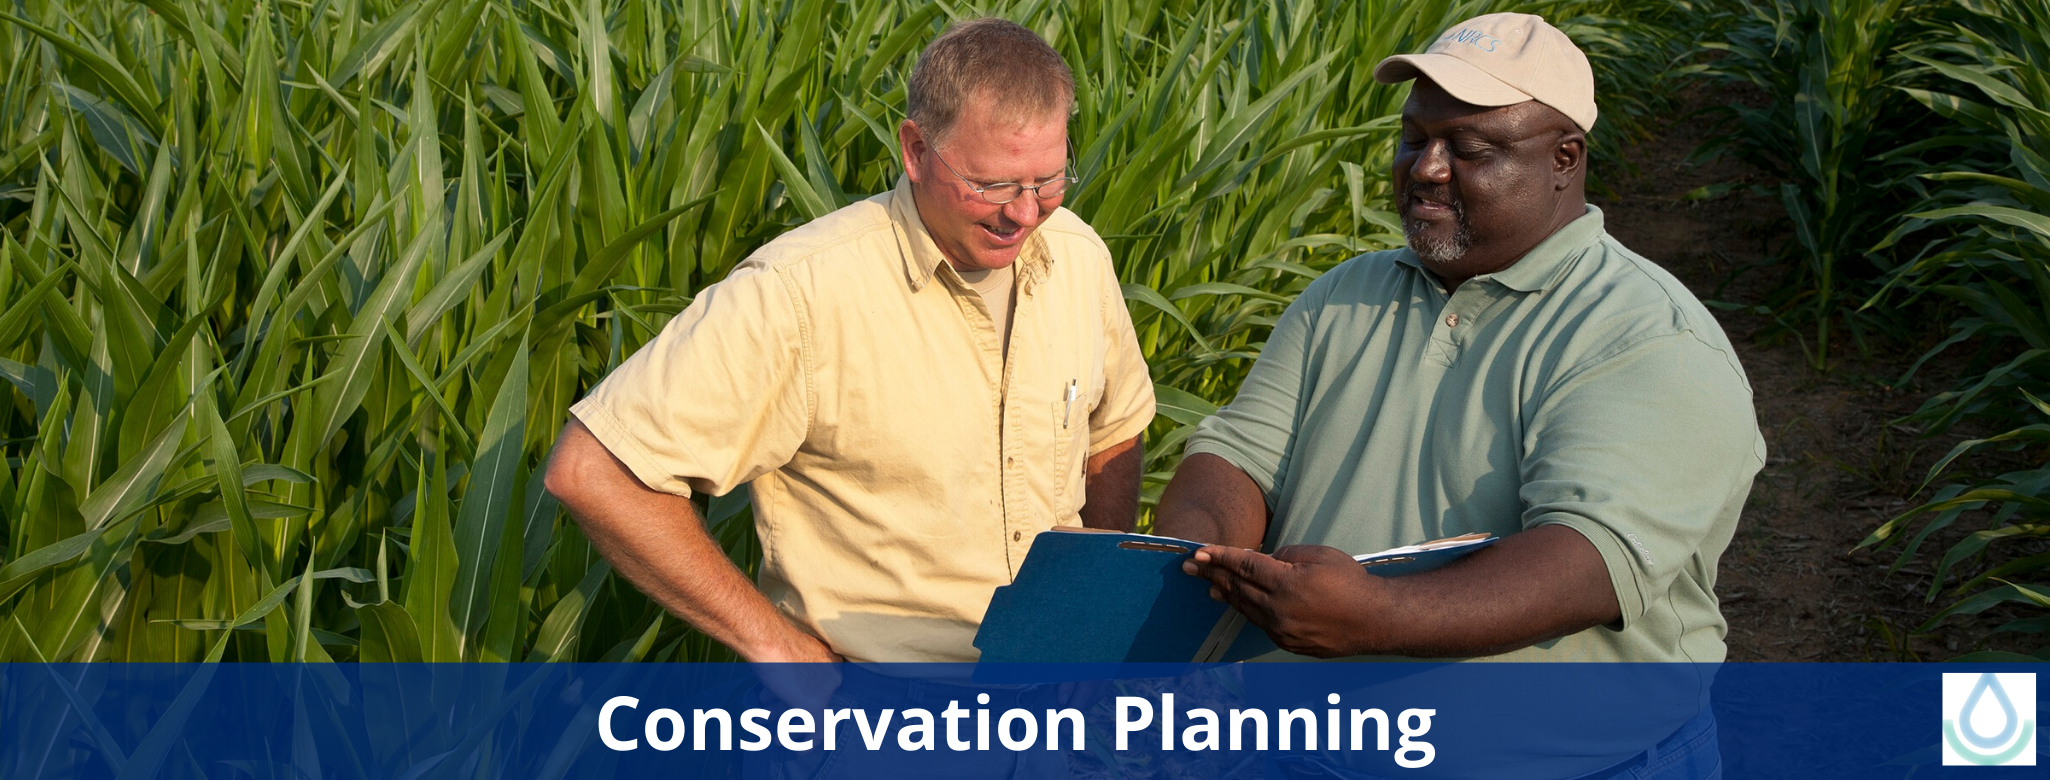 A farmer and an NRCS employee look at a conservation plan while standing in a field.